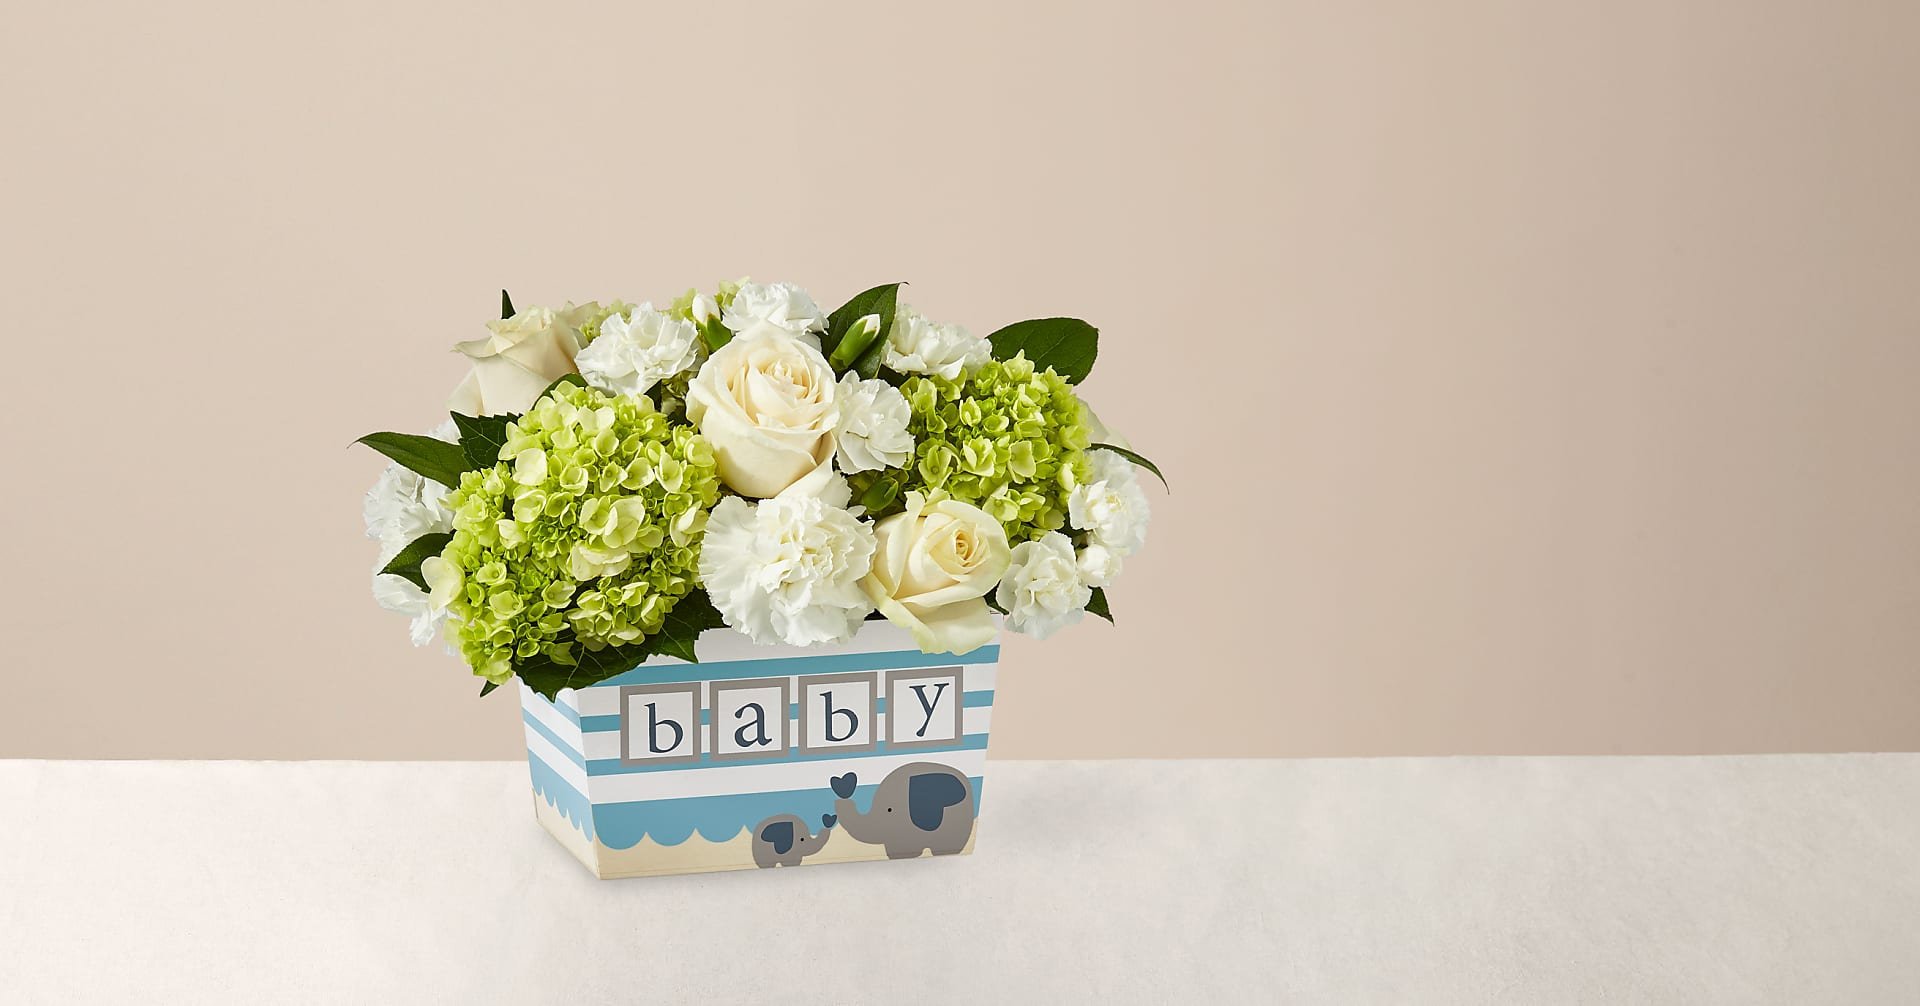 Darling Baby Boy ™ Bouquet - Image 1 Of 3